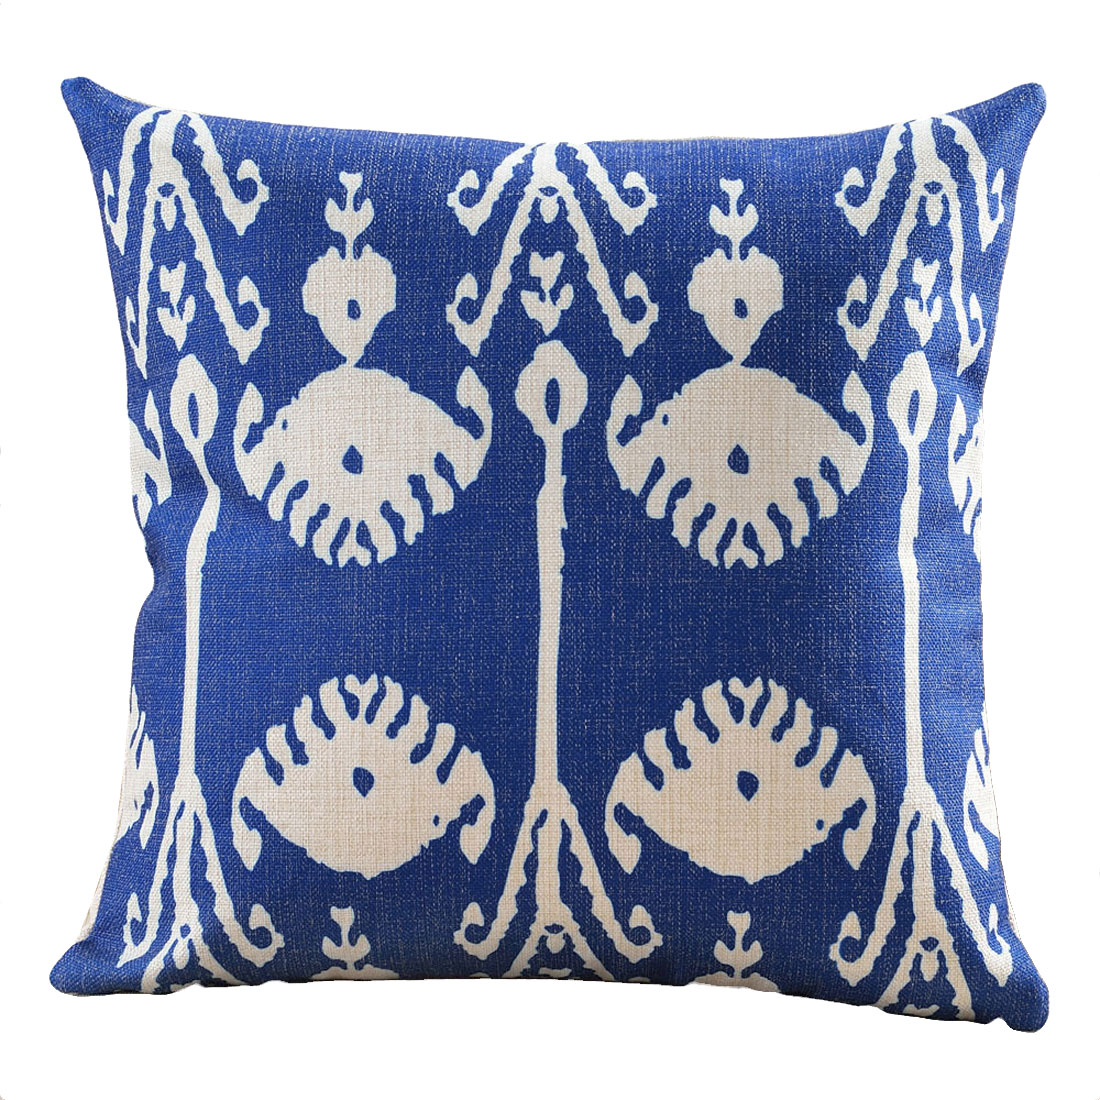 Sofa Cotton Linen Square Design Northern Europe Abstract Style Pillowcase Pillow Cover